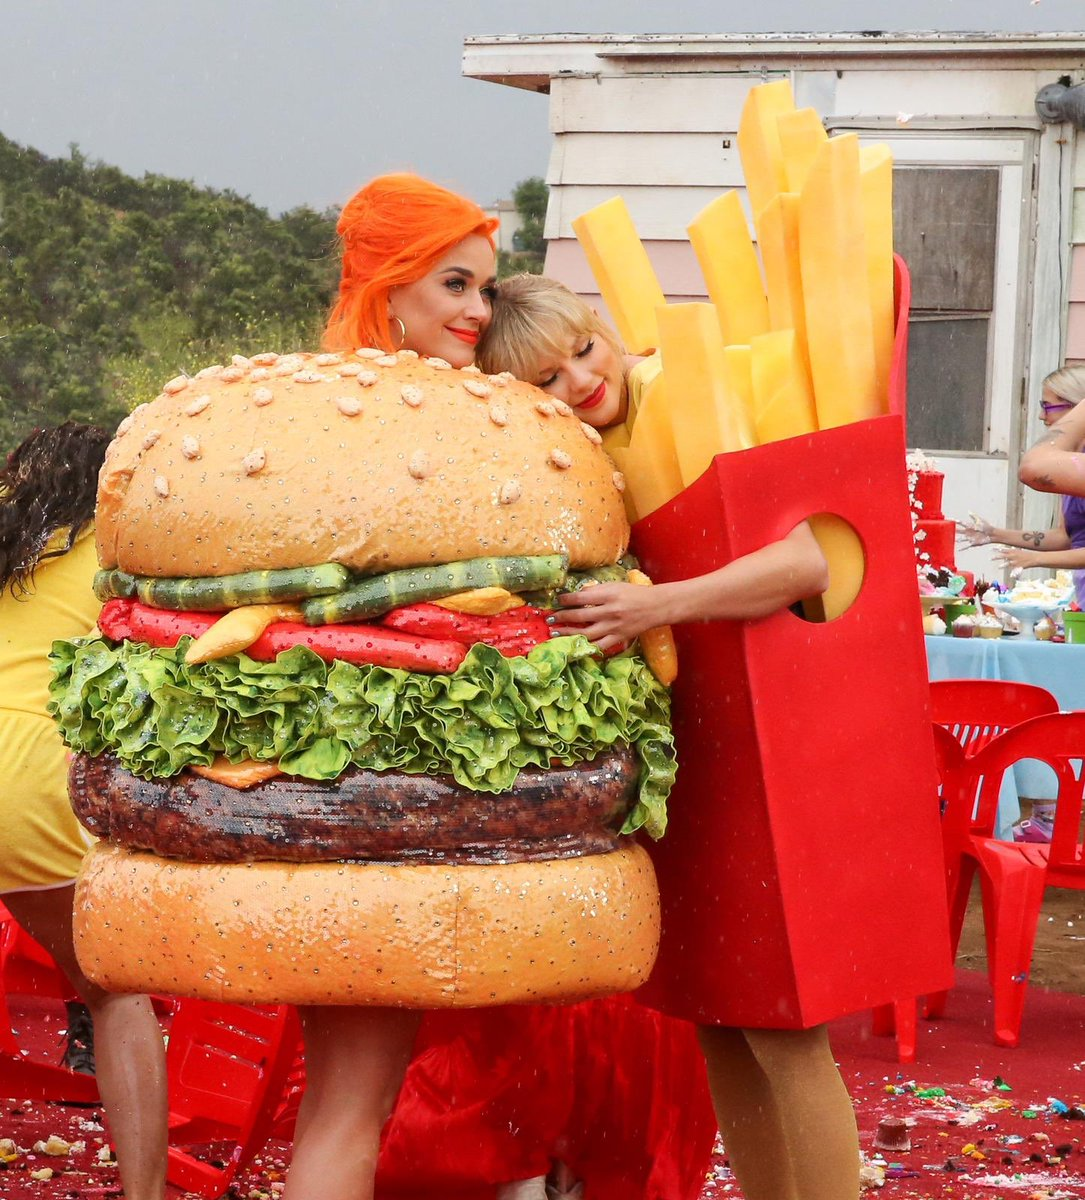 This meal is BEEF-free #MeatFreeMonday 🍔♥️🍟 #YNTCDmusicvideo  http://taylorswift.lnk.to/YNTCD/YouTube